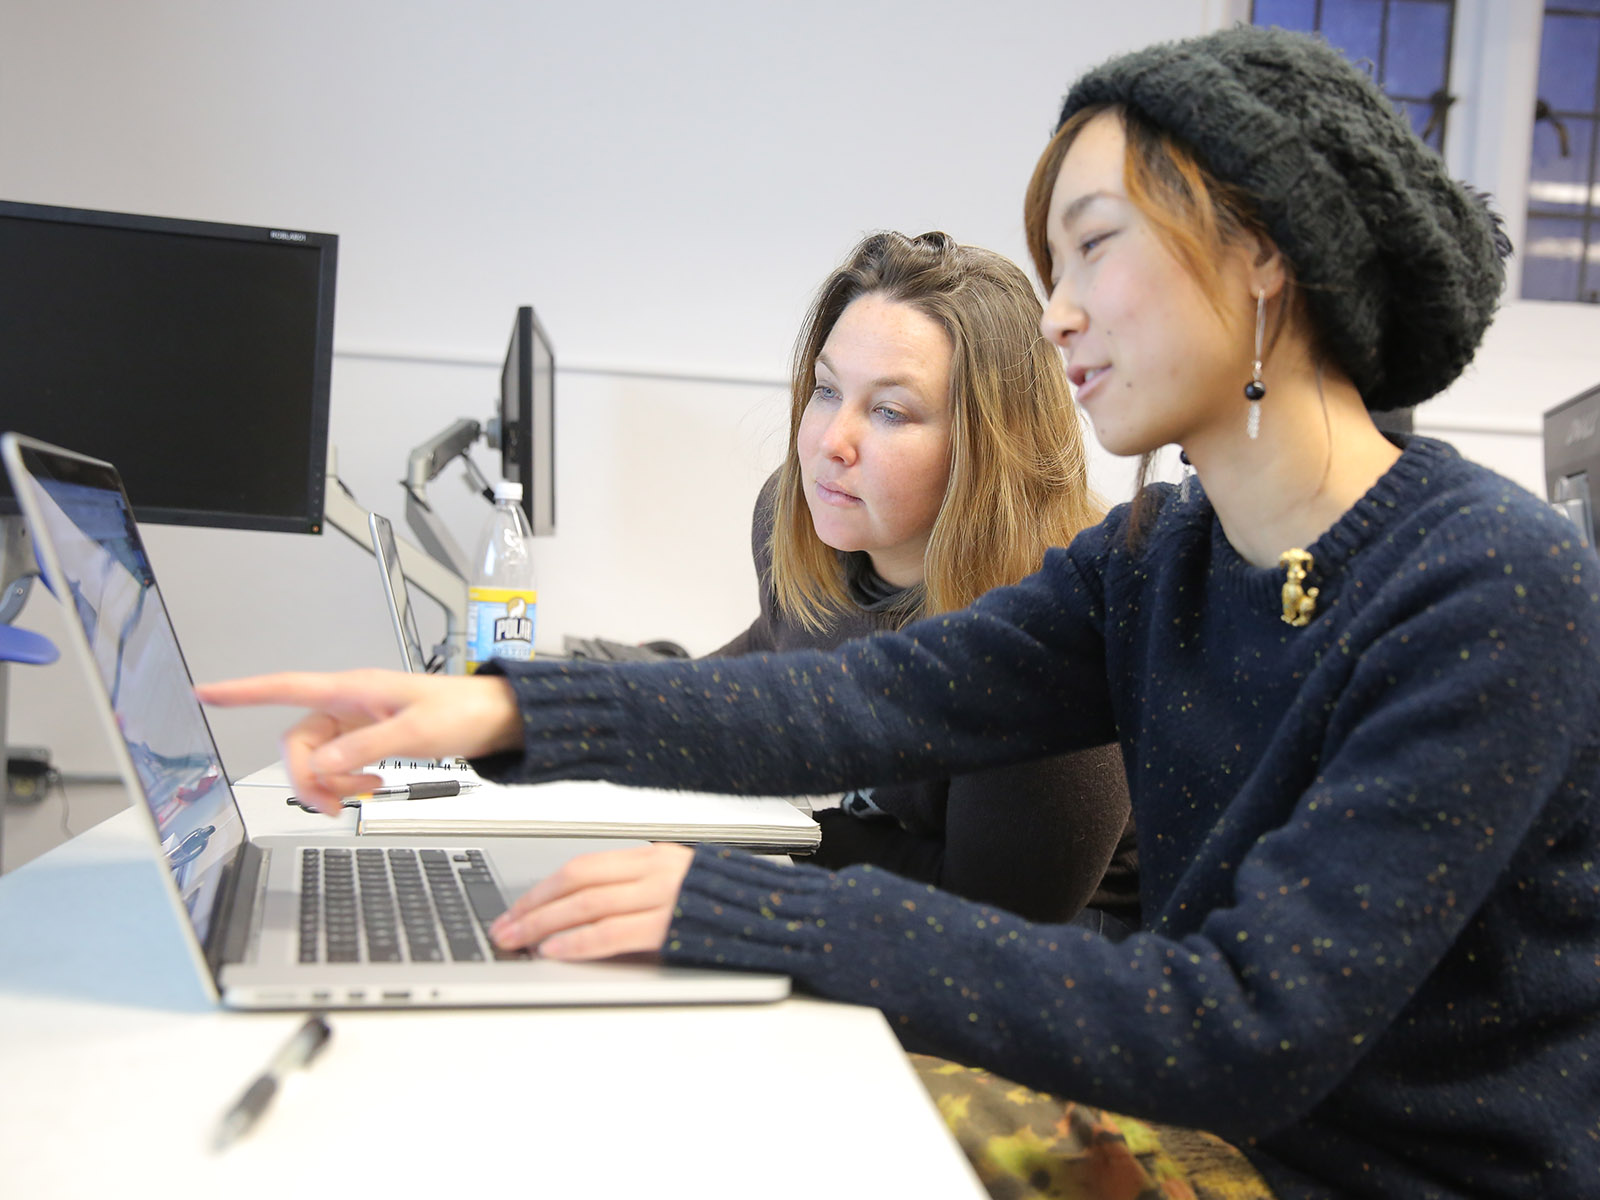 Chika Shimizu ('15) and Caitlin Smith Rapoport ('15) in the Scott Robertson Computer Lab.